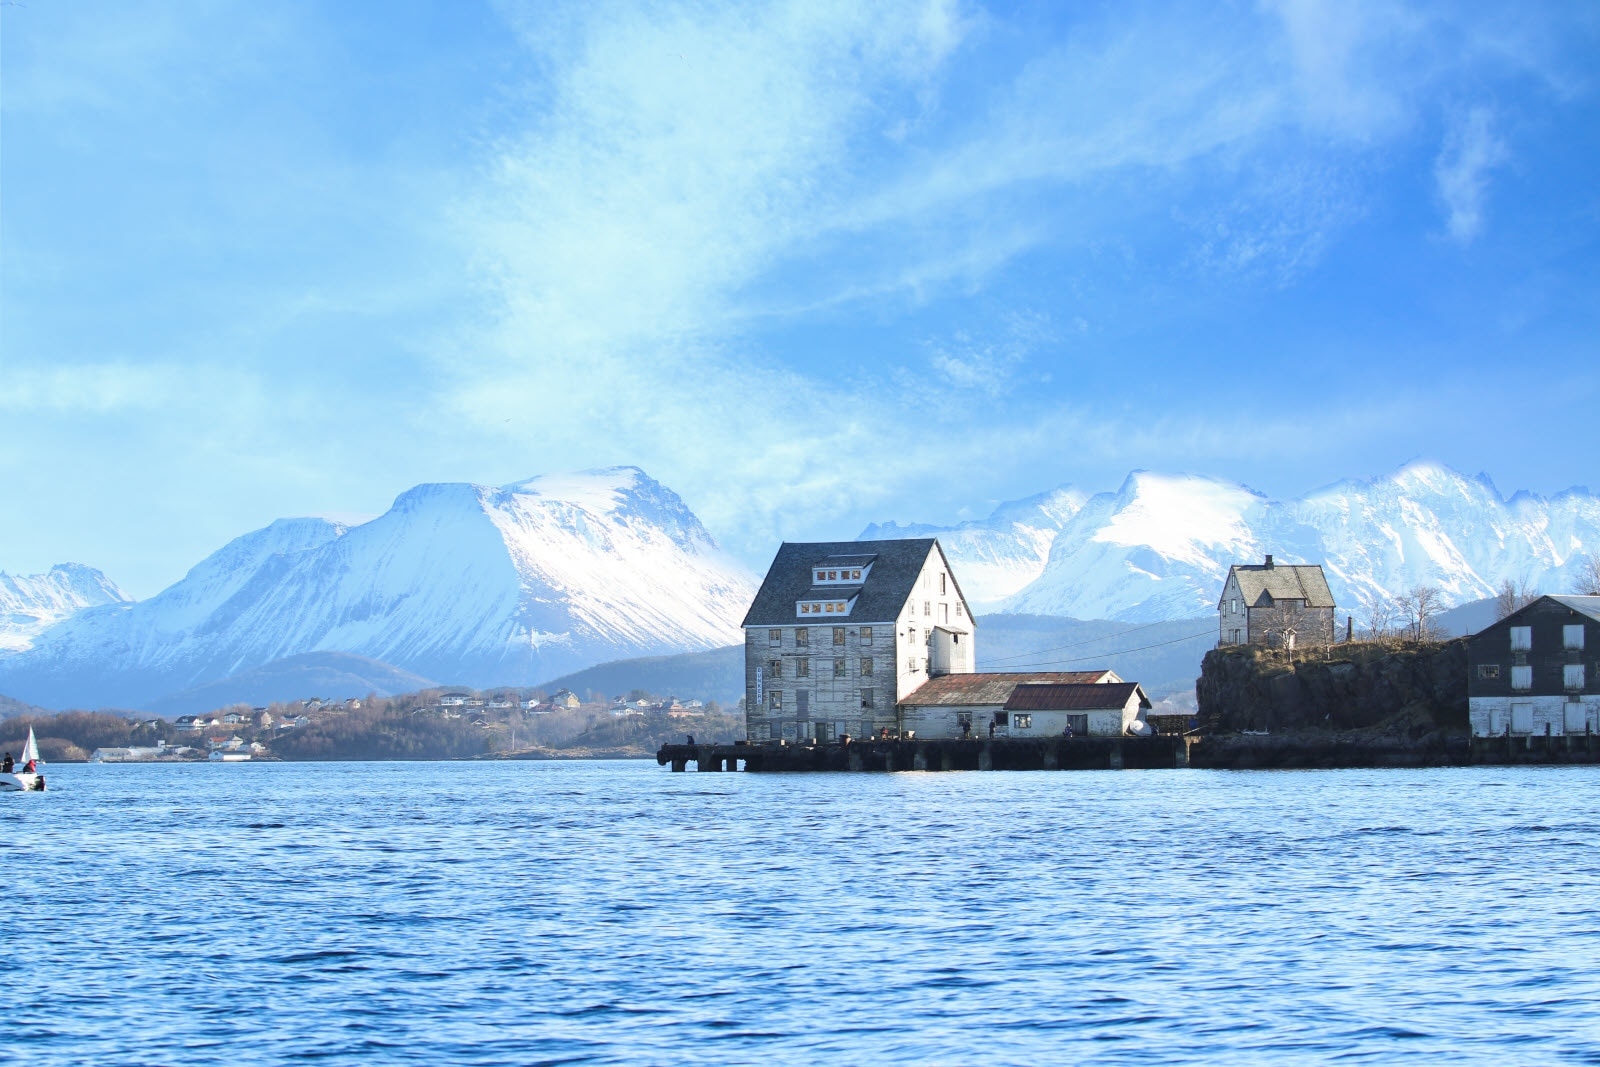 11453252-alesund-port_by_B-rge_Sandnes.jpg